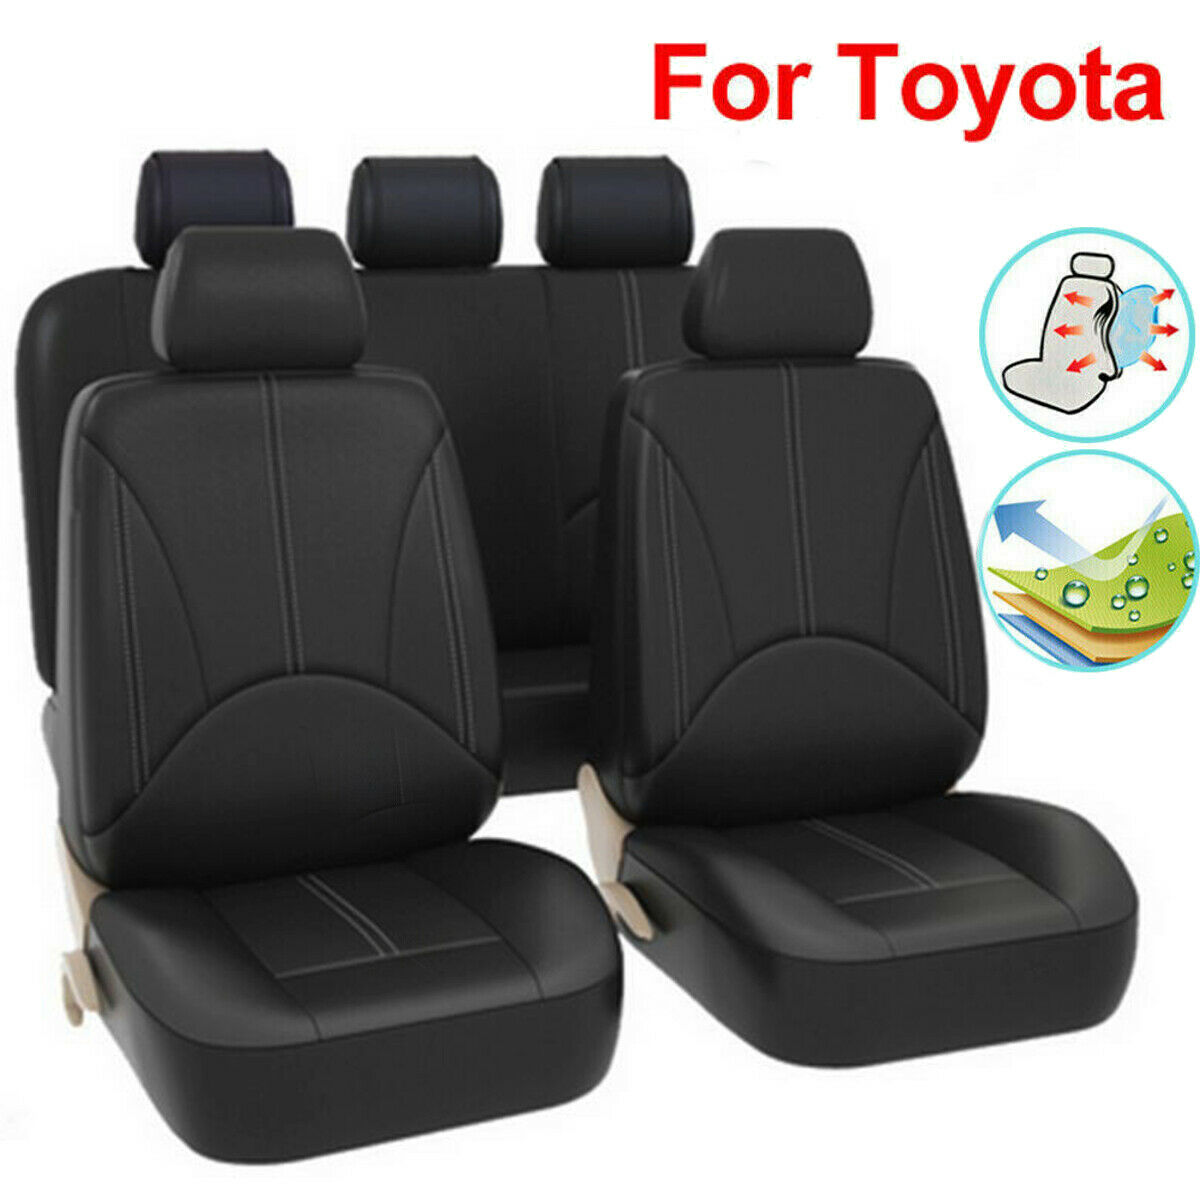 Black Seat Cover Dustproof Breathable Wear-resistant Set Parts Durable